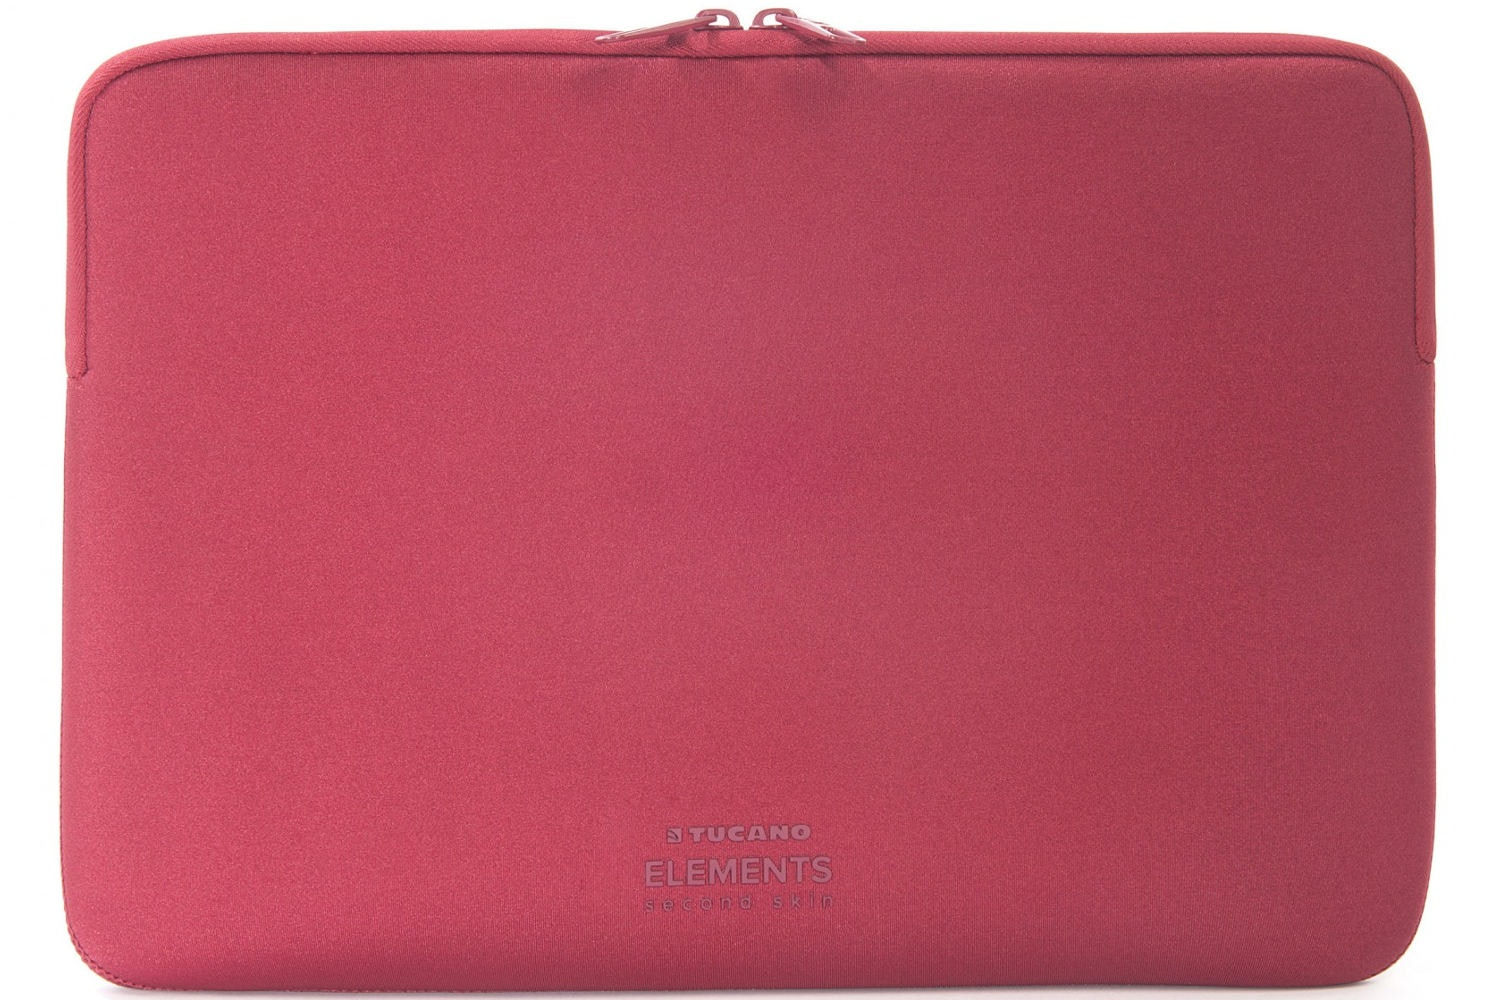 Tucano Sleeve for MacBook Air 13"